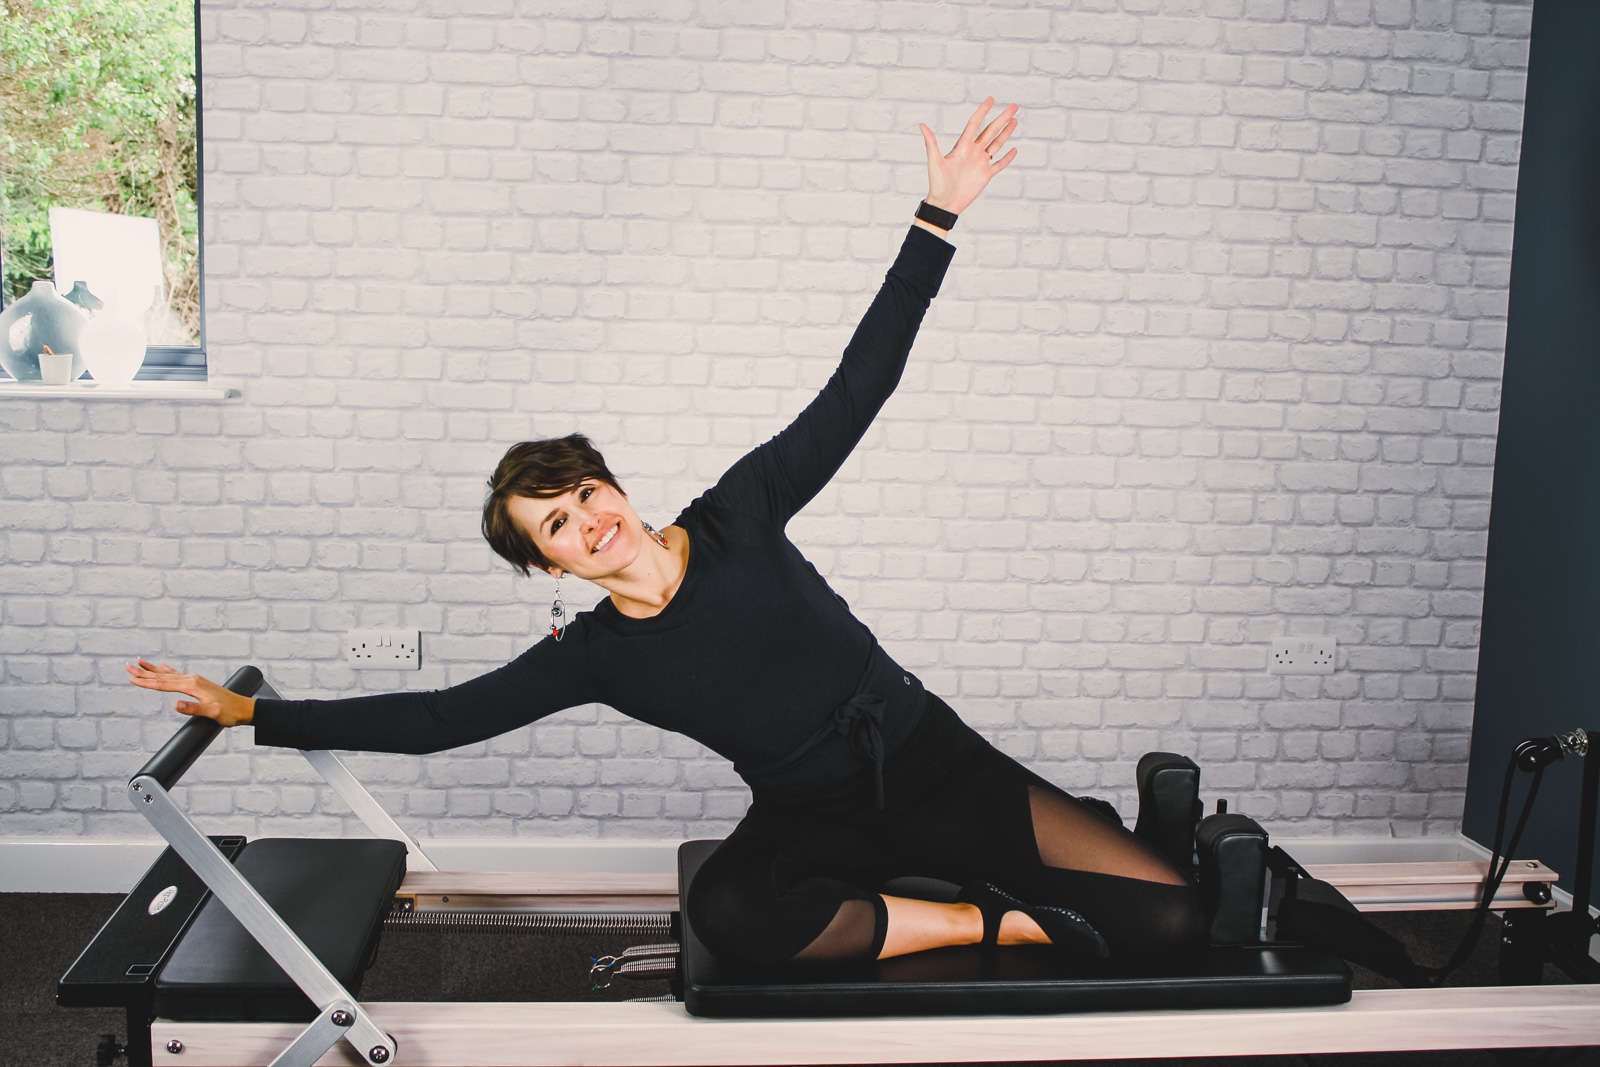 Hello There.. - It's Christa here, aka The Food Fanatic & Exercise Enthusiast. I focus on helping others live their best lives as a Wellbeing & Pilates Coach. I believe that healthy is an outfit that looks different on everyone. From the food we eat, the movements we make, the relationships we keep, and what we tell ourselves everyday. Each element has a part to play in our whole well-being. If you are interested in learning more about me click below!